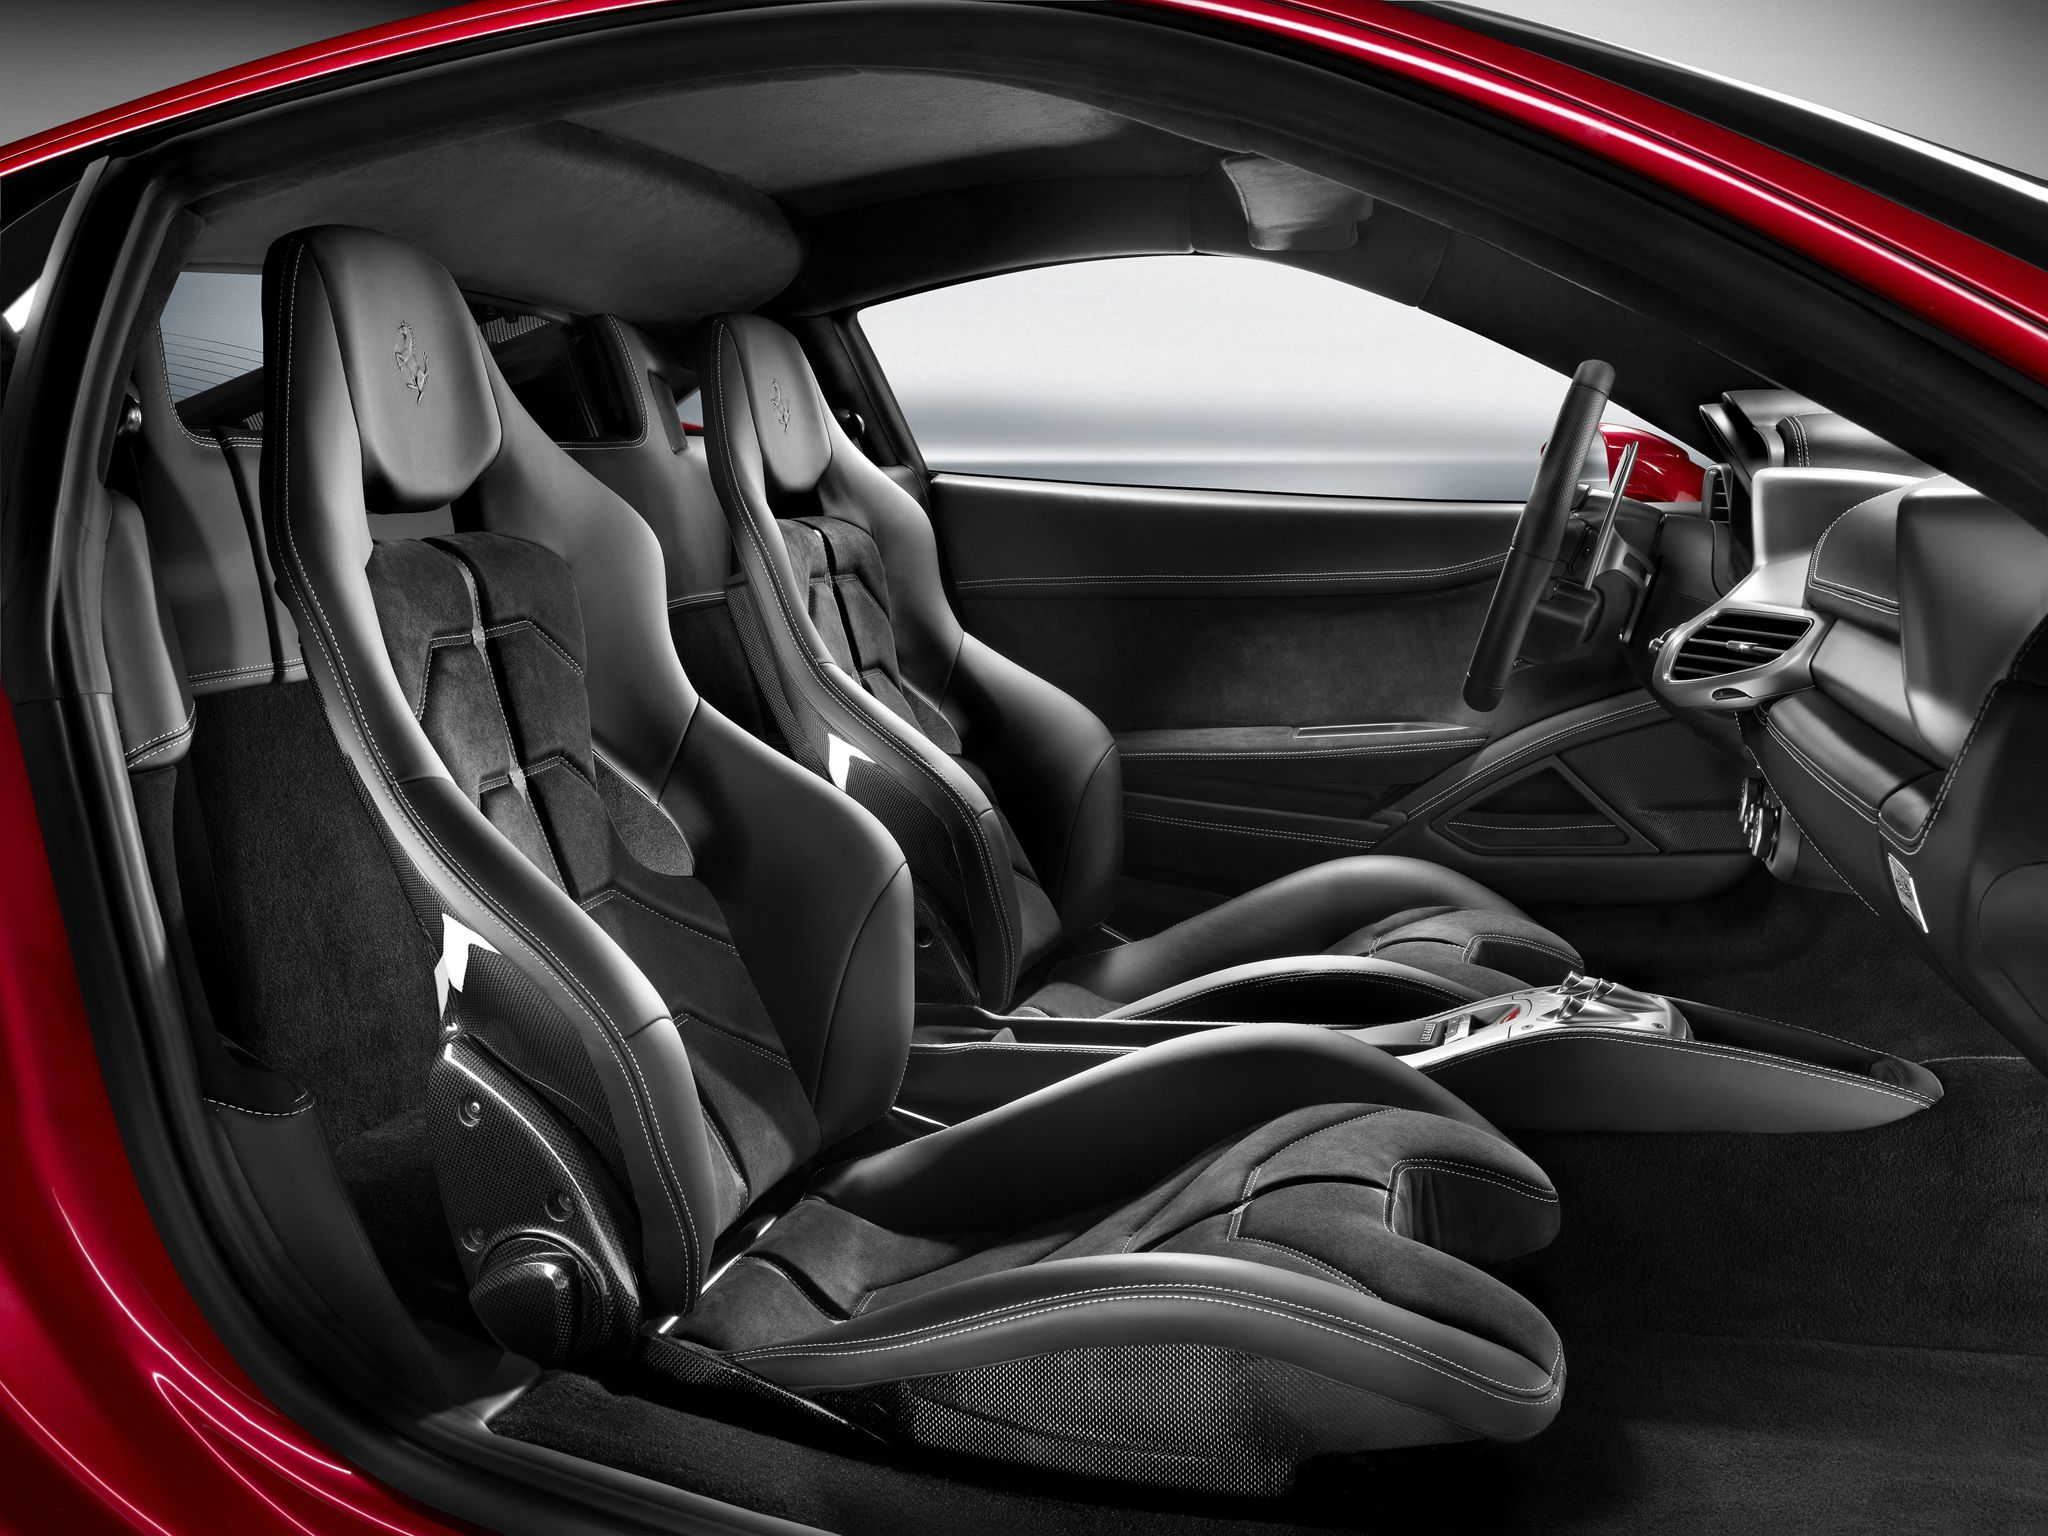 ferrari 458 italia interior i love the carbon fiber bucket seats - 2014 Ferrari 458 Italia Interior